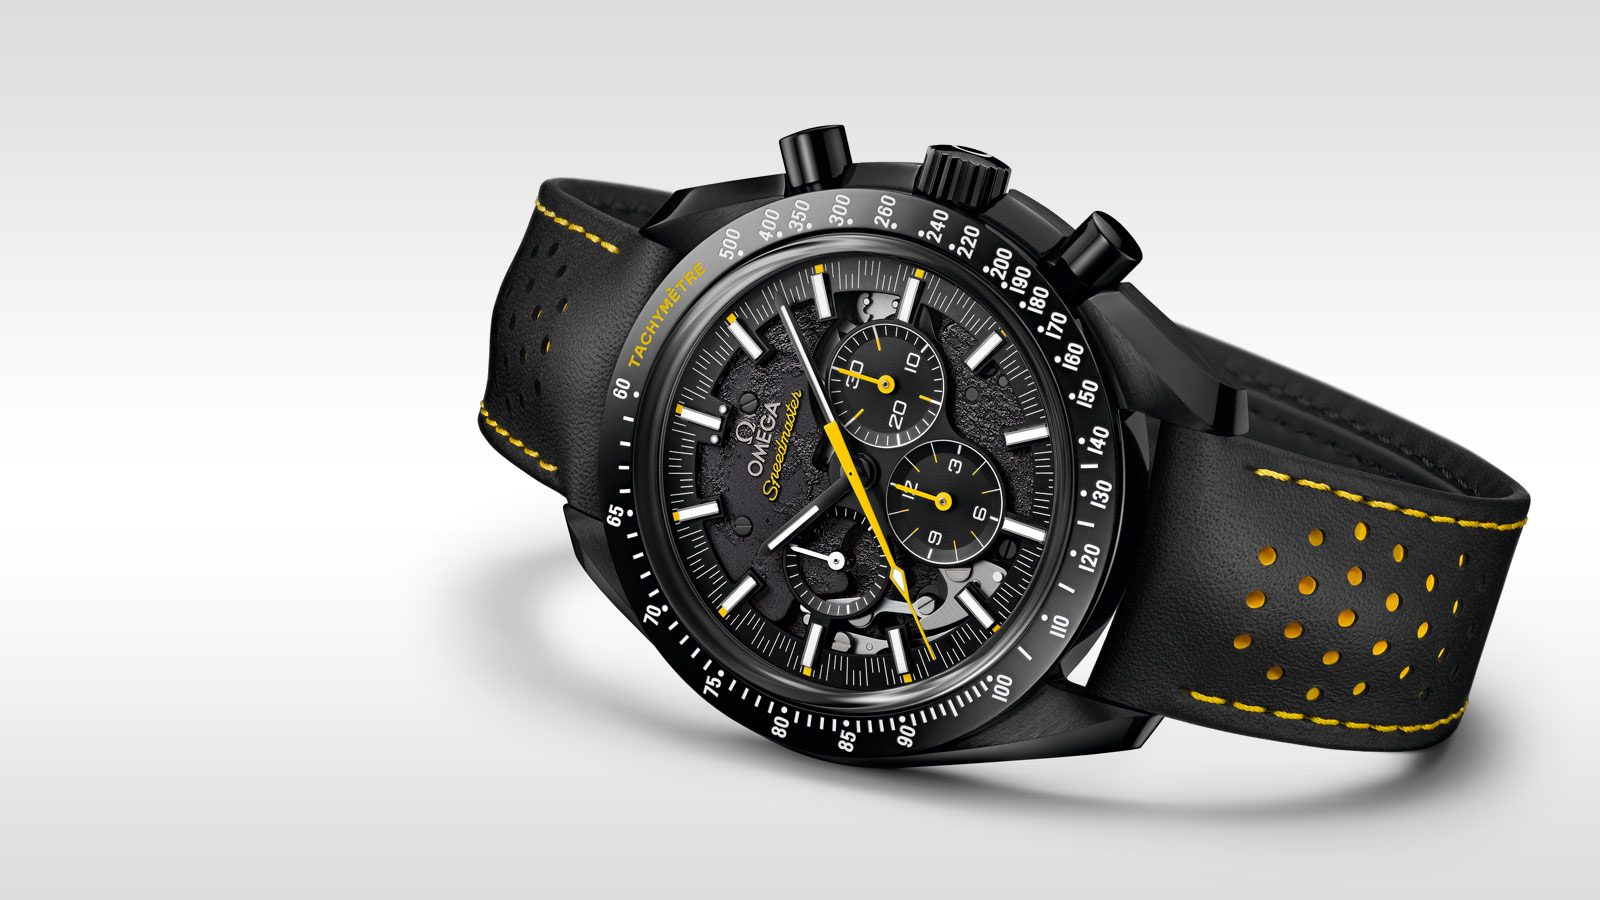 Speedmaster ムーンウォッチ Moonwatch Chronograph 44.25 mm - 311.92.44.30.01.001 - ビュー 2